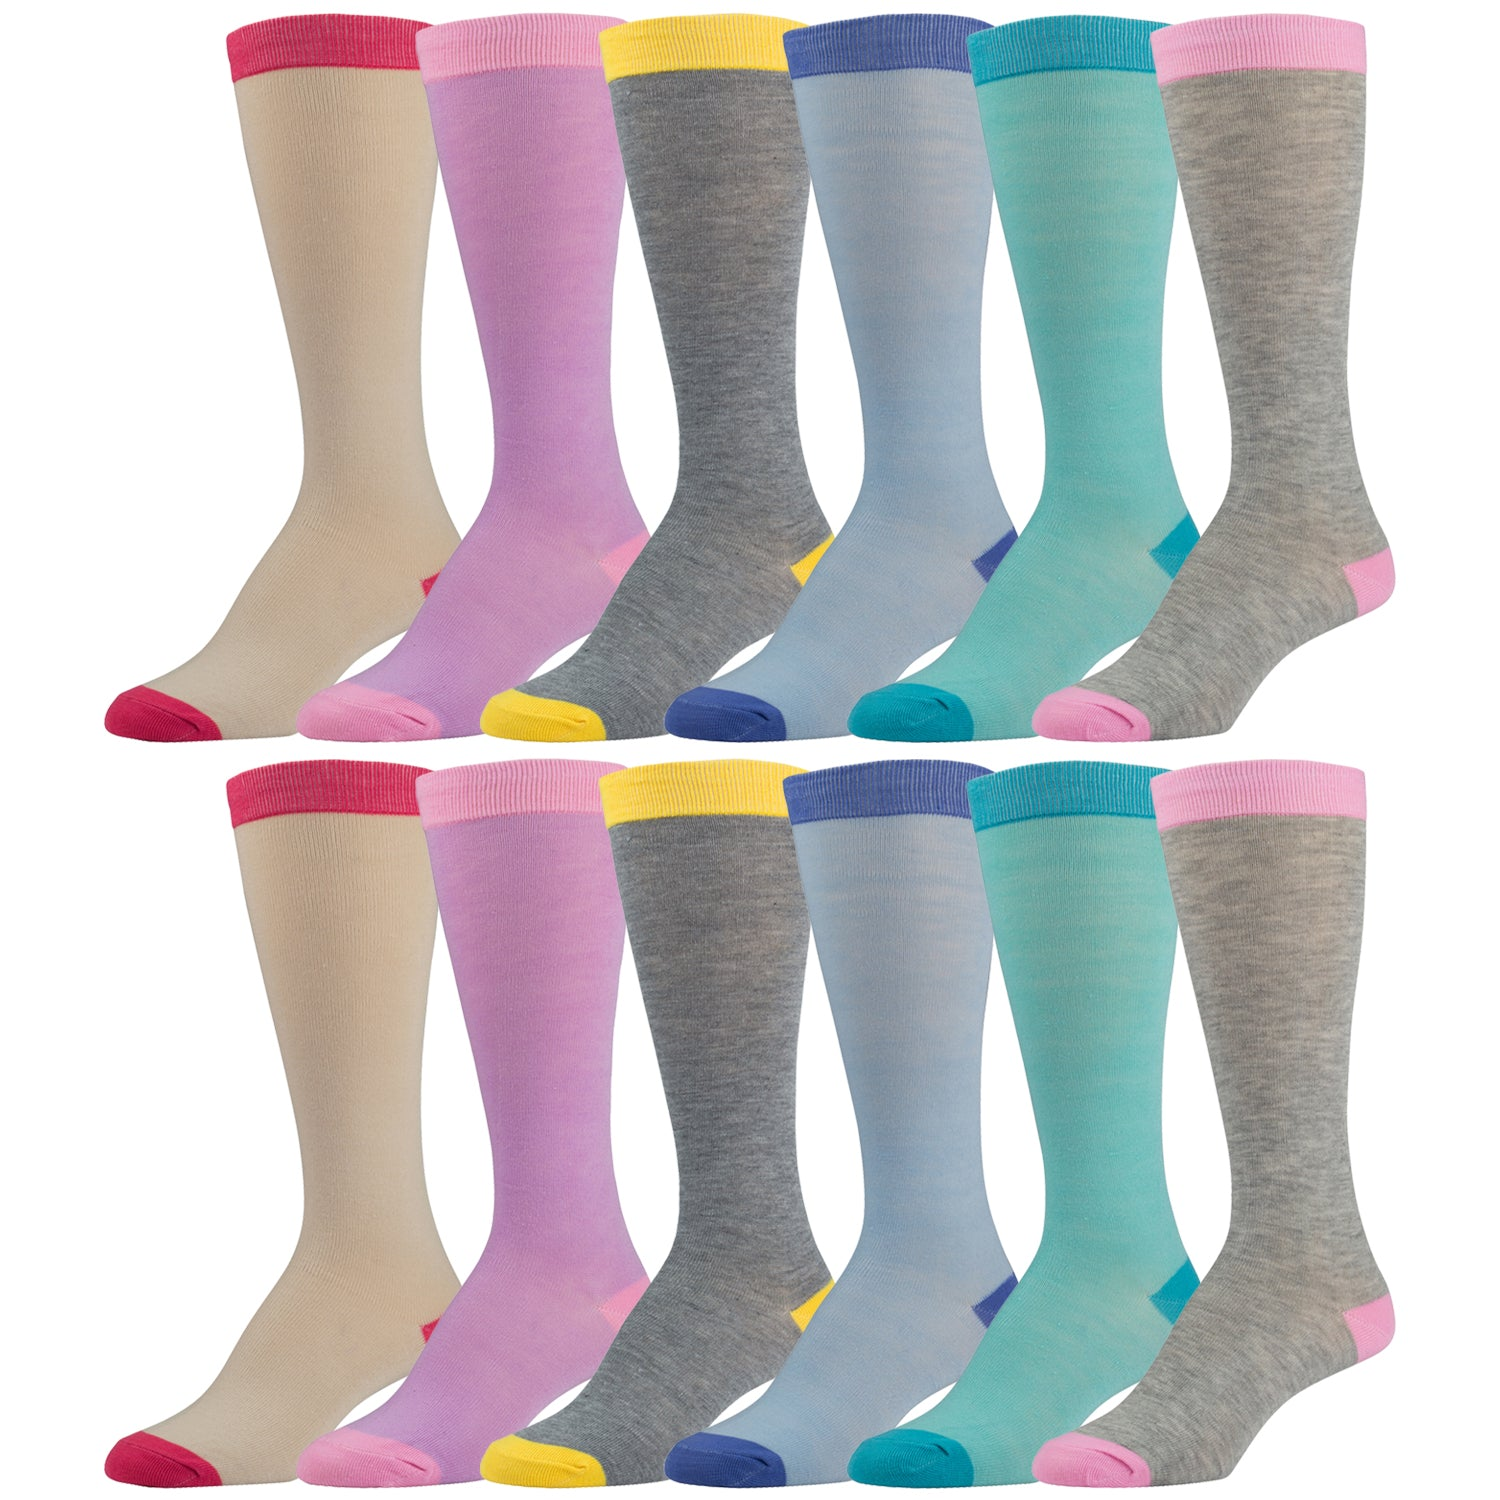 12 Pairs of Colorful Knee High Socks With Multicolored Tops